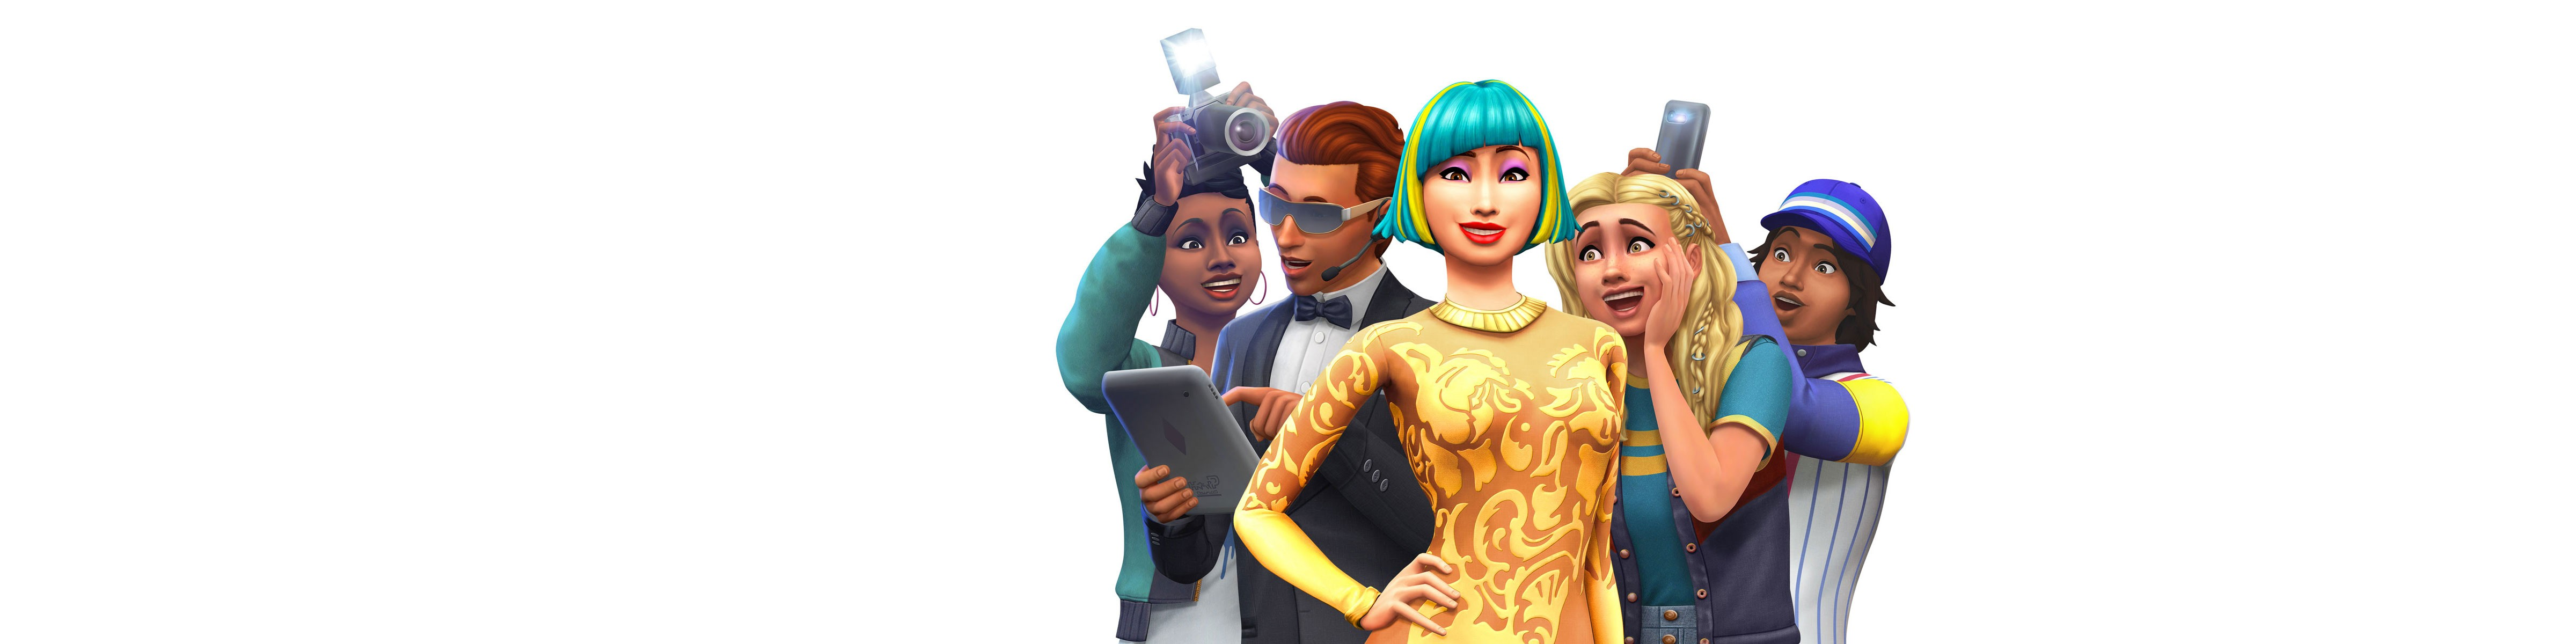 the sims 4 get famous download